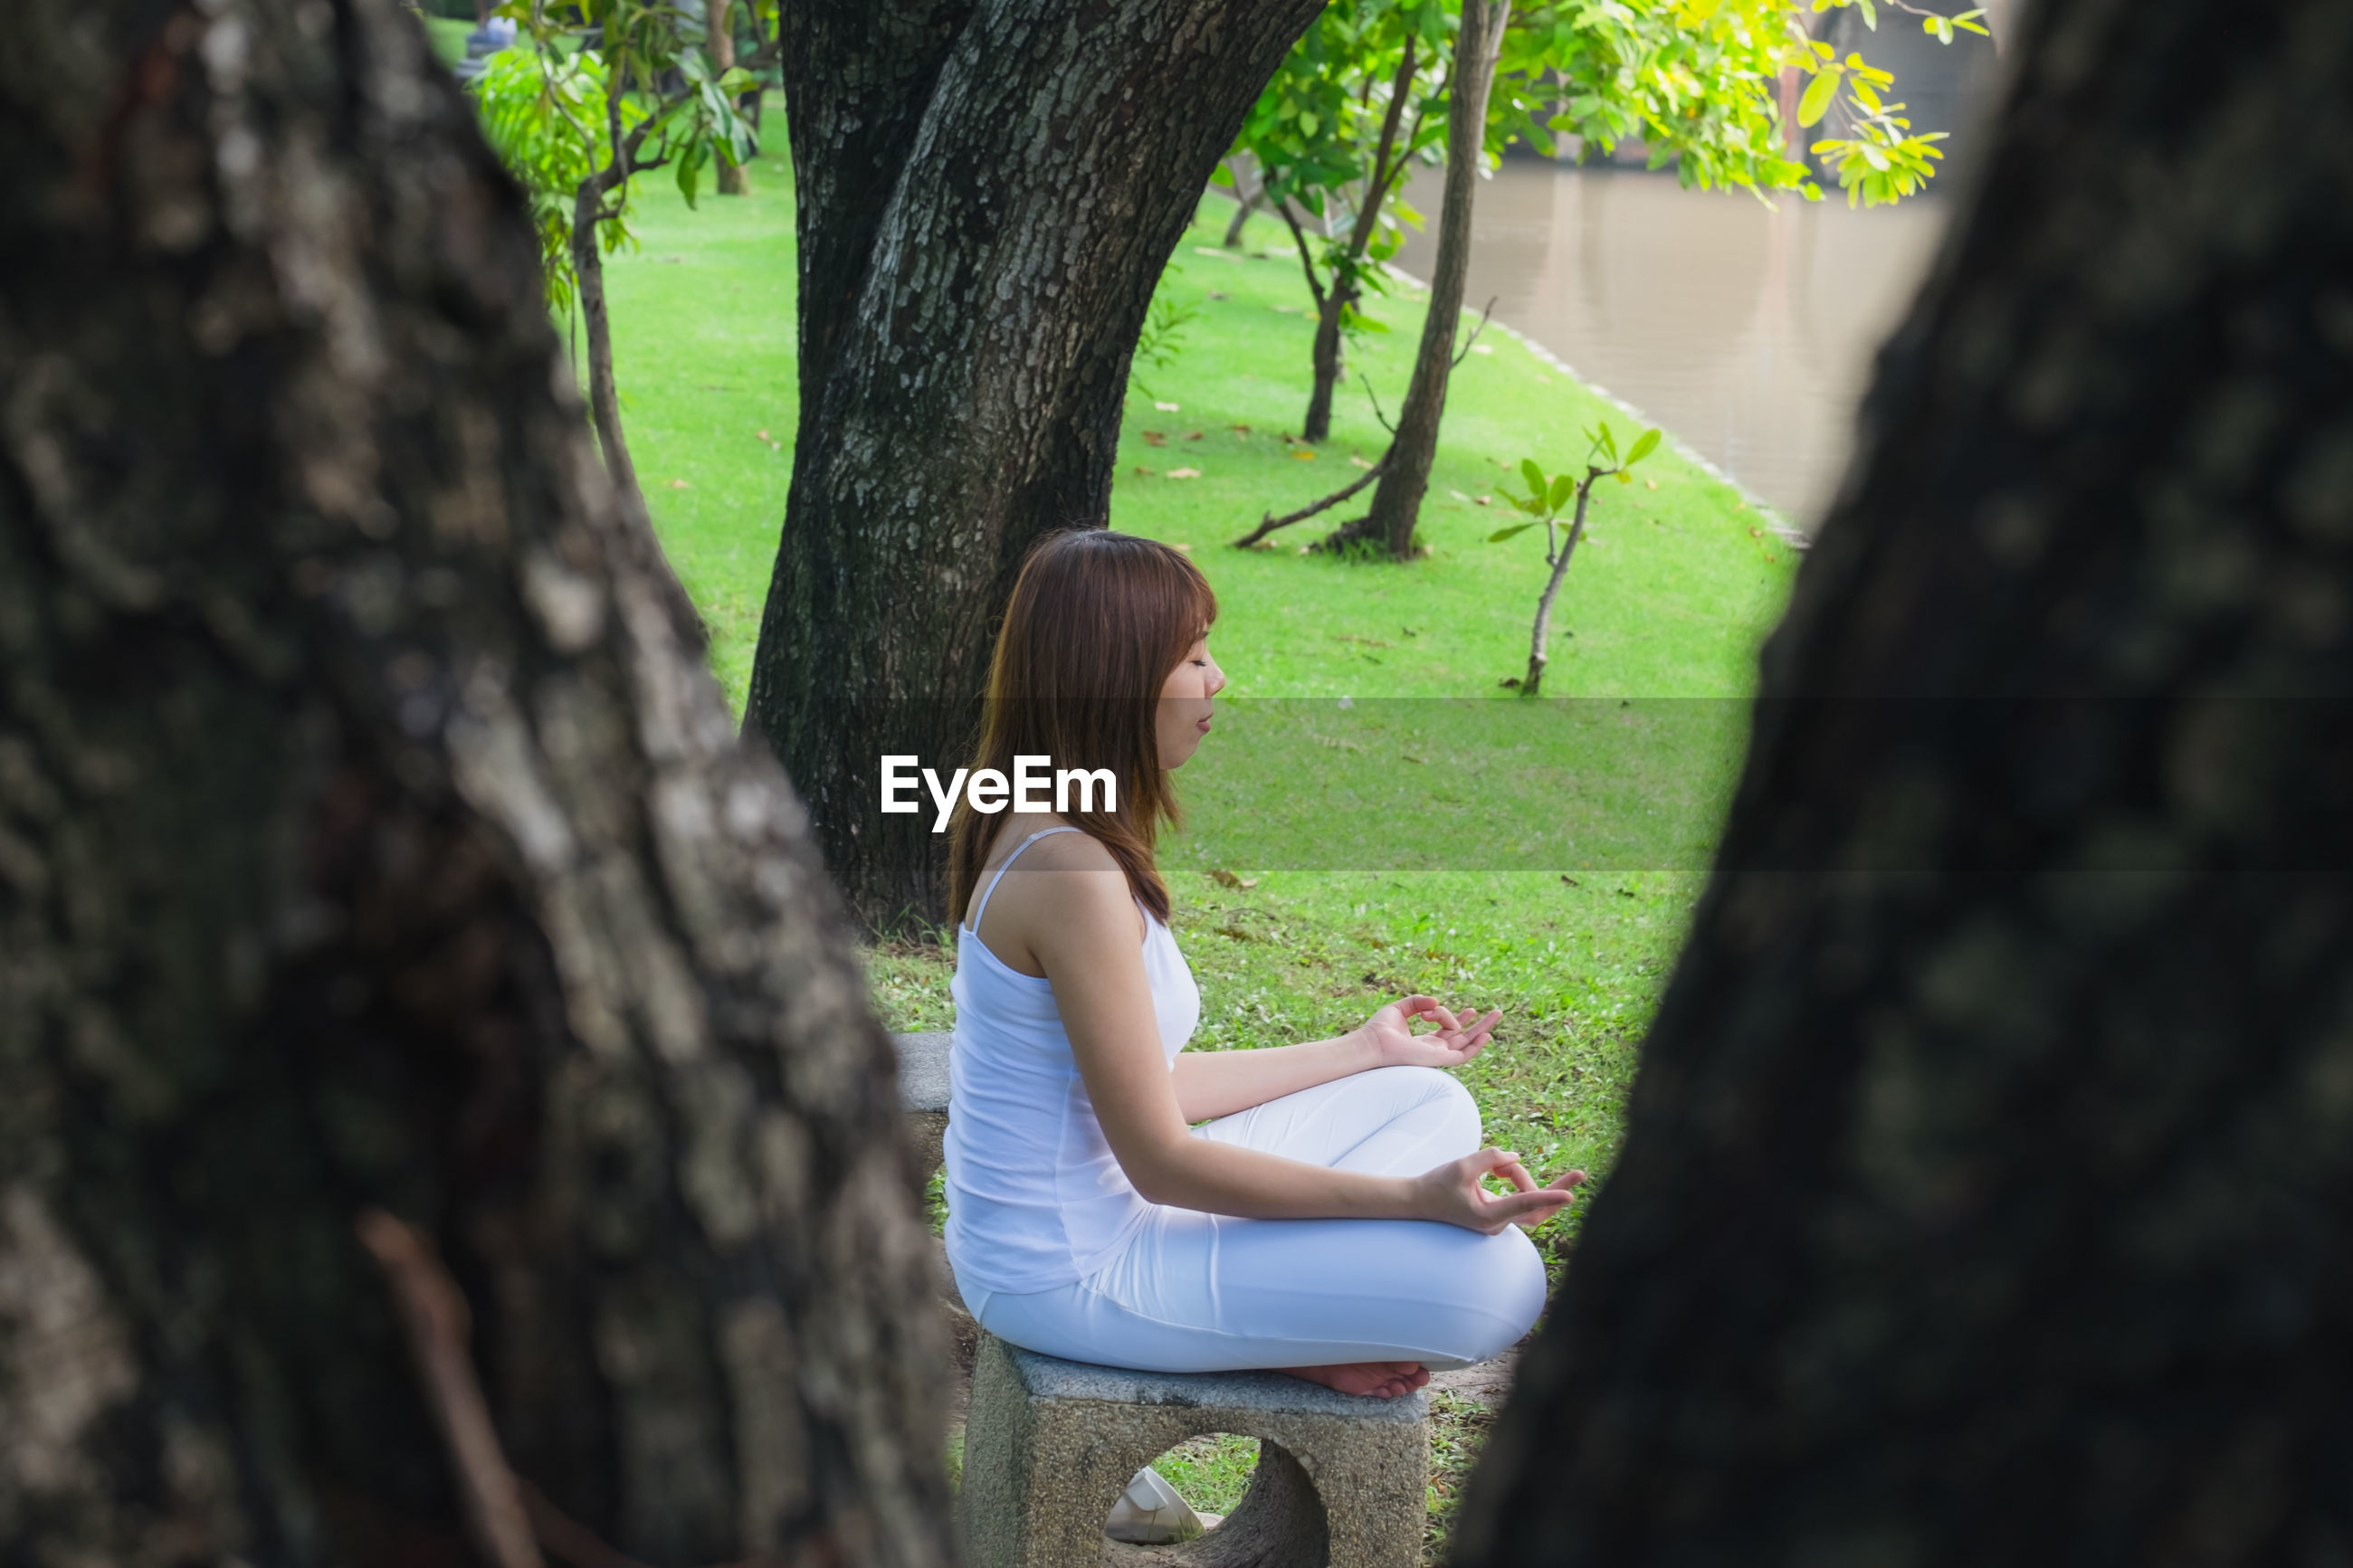 Woman meditating while sitting by tree in park